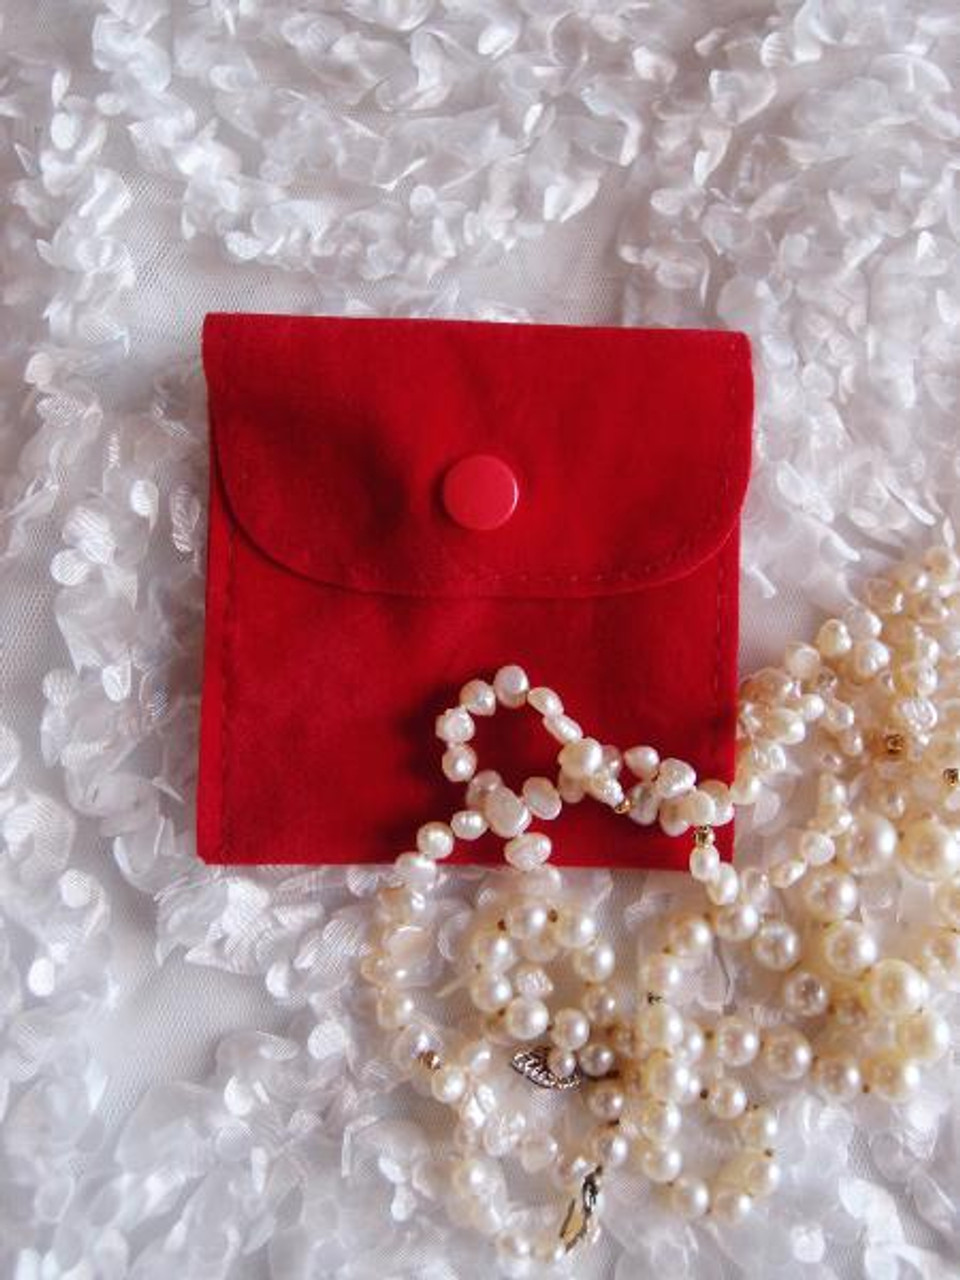 Wholesale Velvet Jewelry Bags, Red Velvet Jewelry Pouch with Snap Fastener 3 x 3 inches J134-12 | Packaging Decor